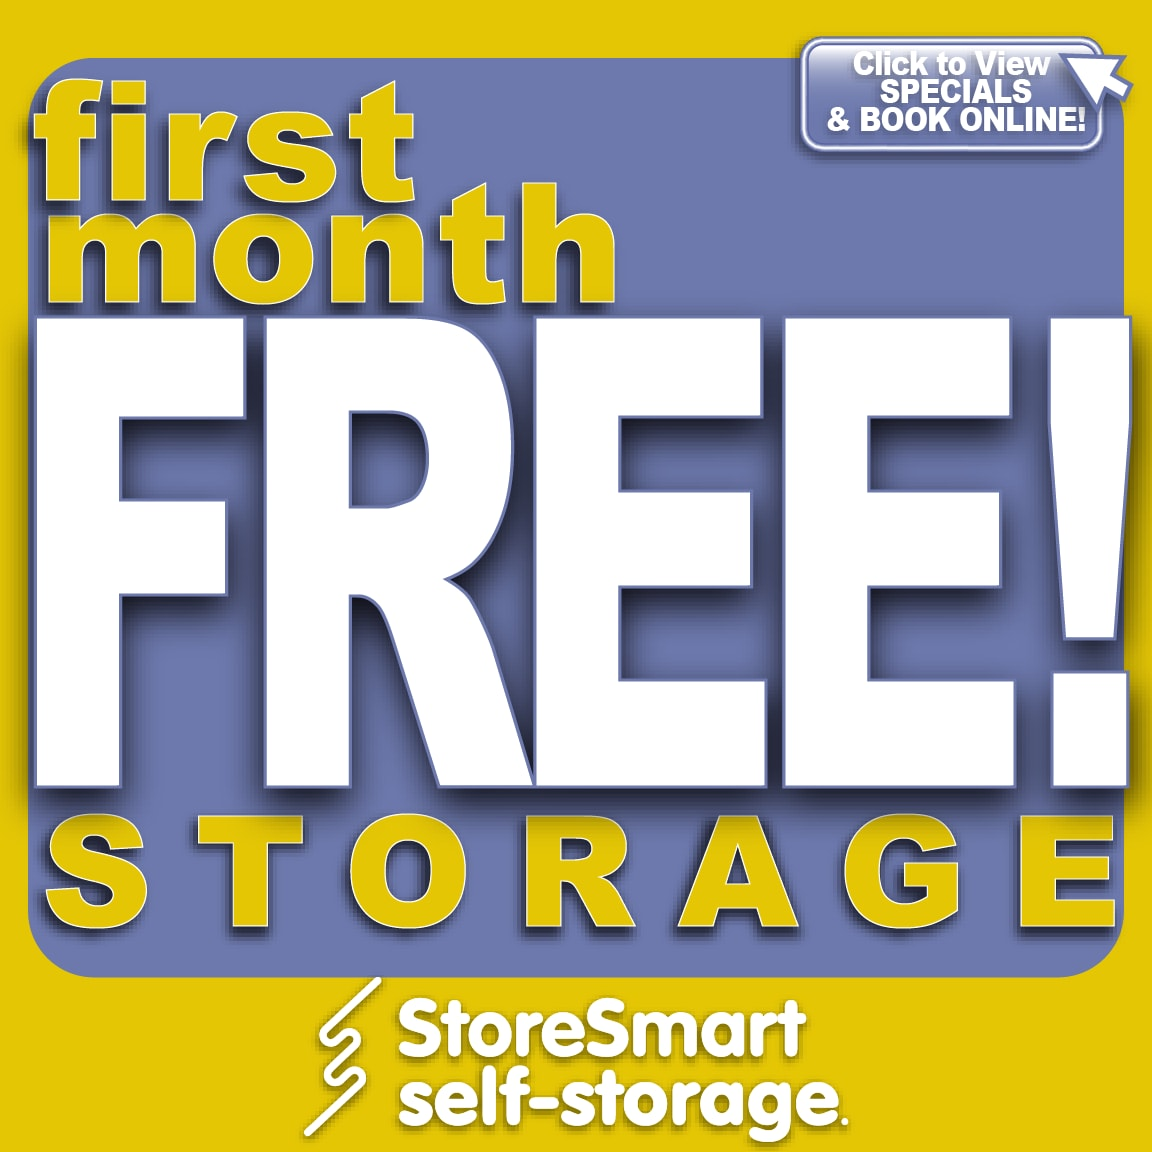 Special at StoreSmart Self-Storage in Naples, Florida